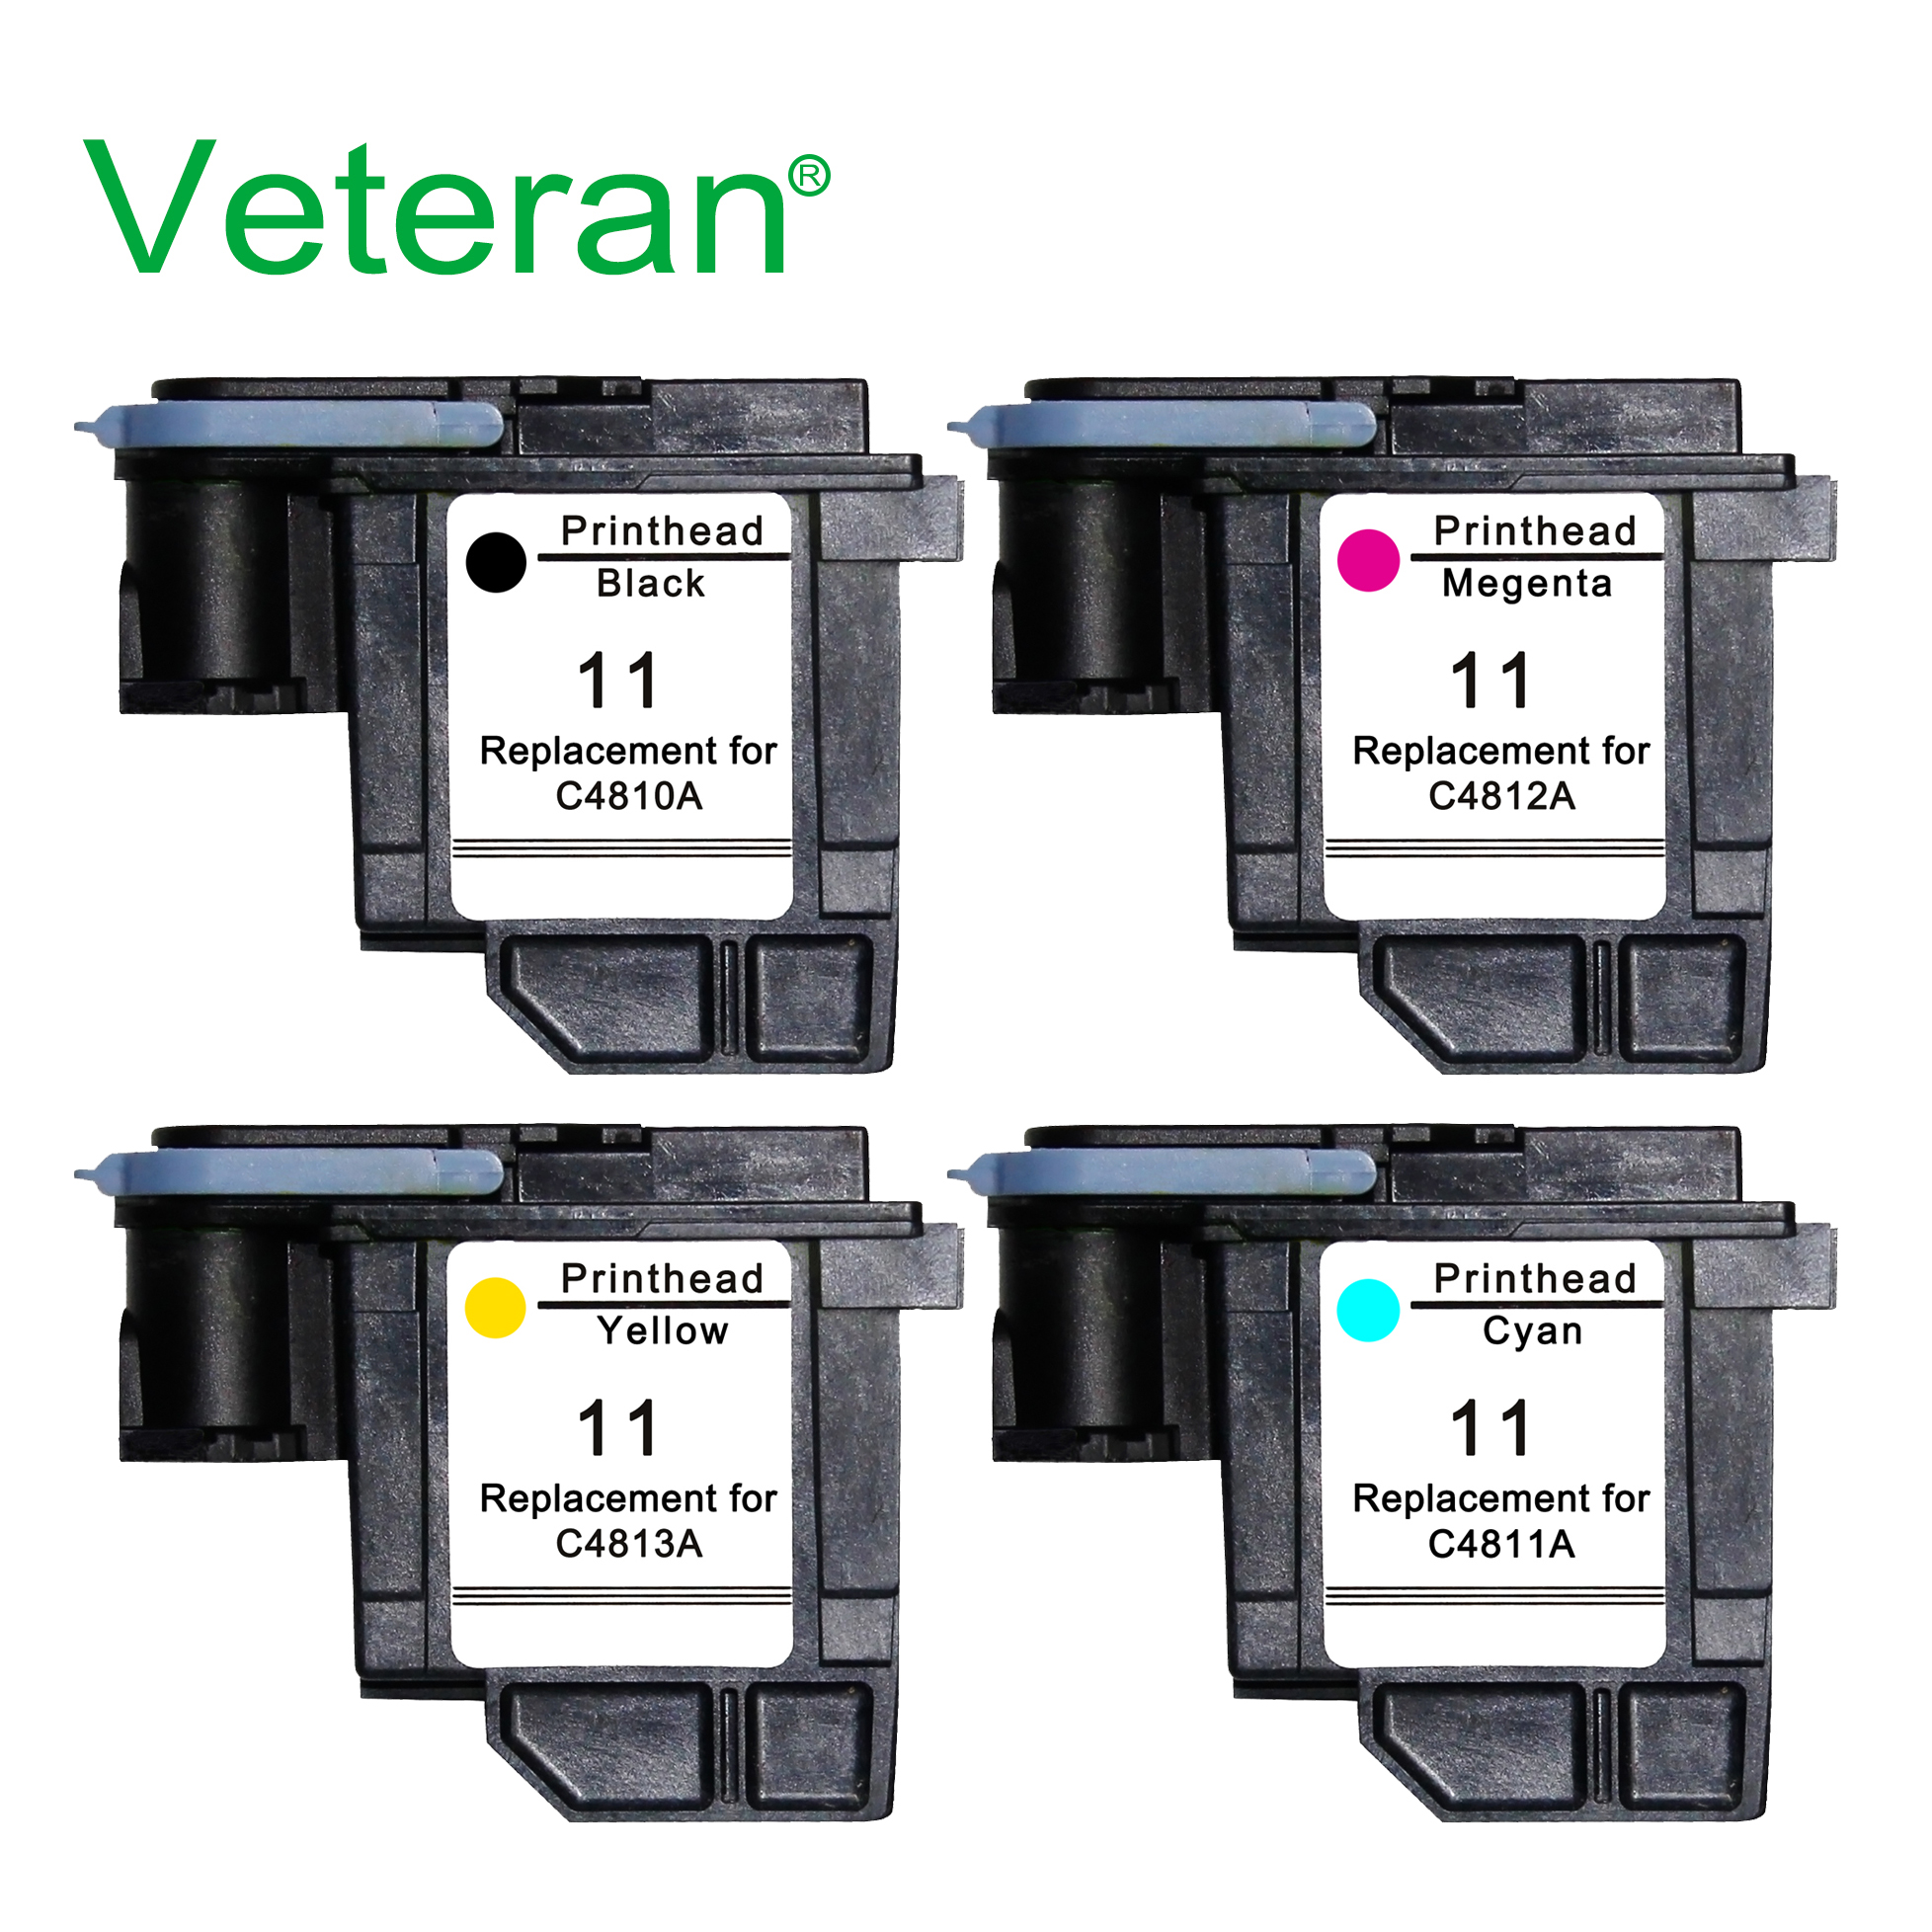 Veteran C4810A C4811A C4812A C4813A For Hp 11 Printhead Hp11 For HP Designjet 70 100 110 111 120 500 510 1100 Printheads Printer(China)